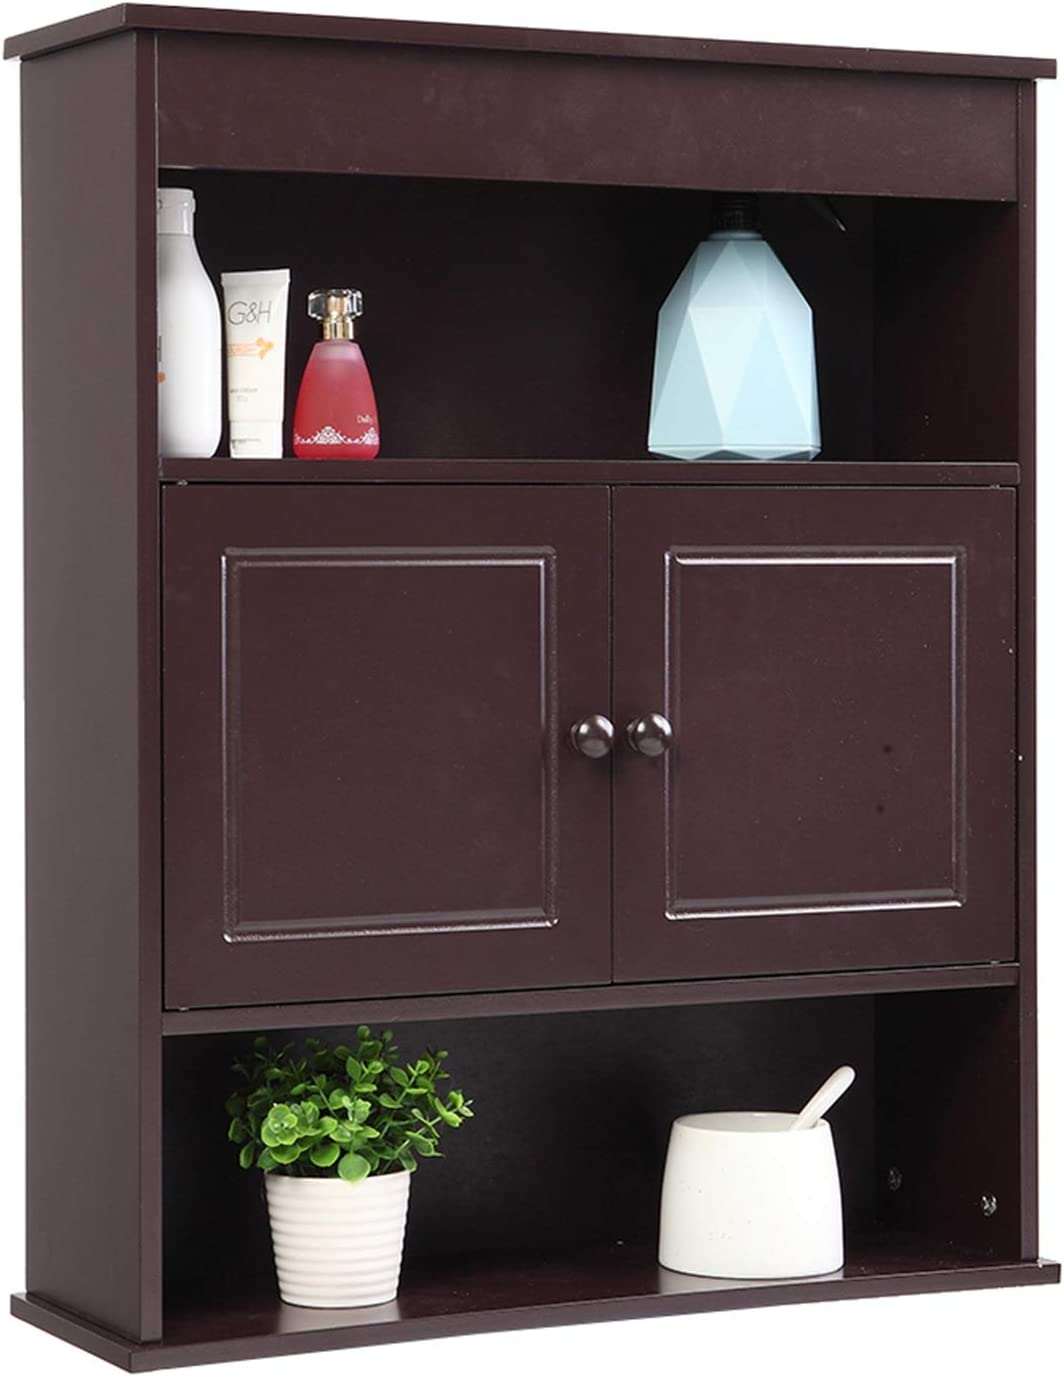 YADSHENG Bathroom Cabinet Bathroom Cabinet with Two-Door Bathroom Cabinet with Upper and Lower Floors, Brown Bathroom Furniture Storage Cabinets (Color : Brown, Size : 22.83x27.95x7.28 inches)